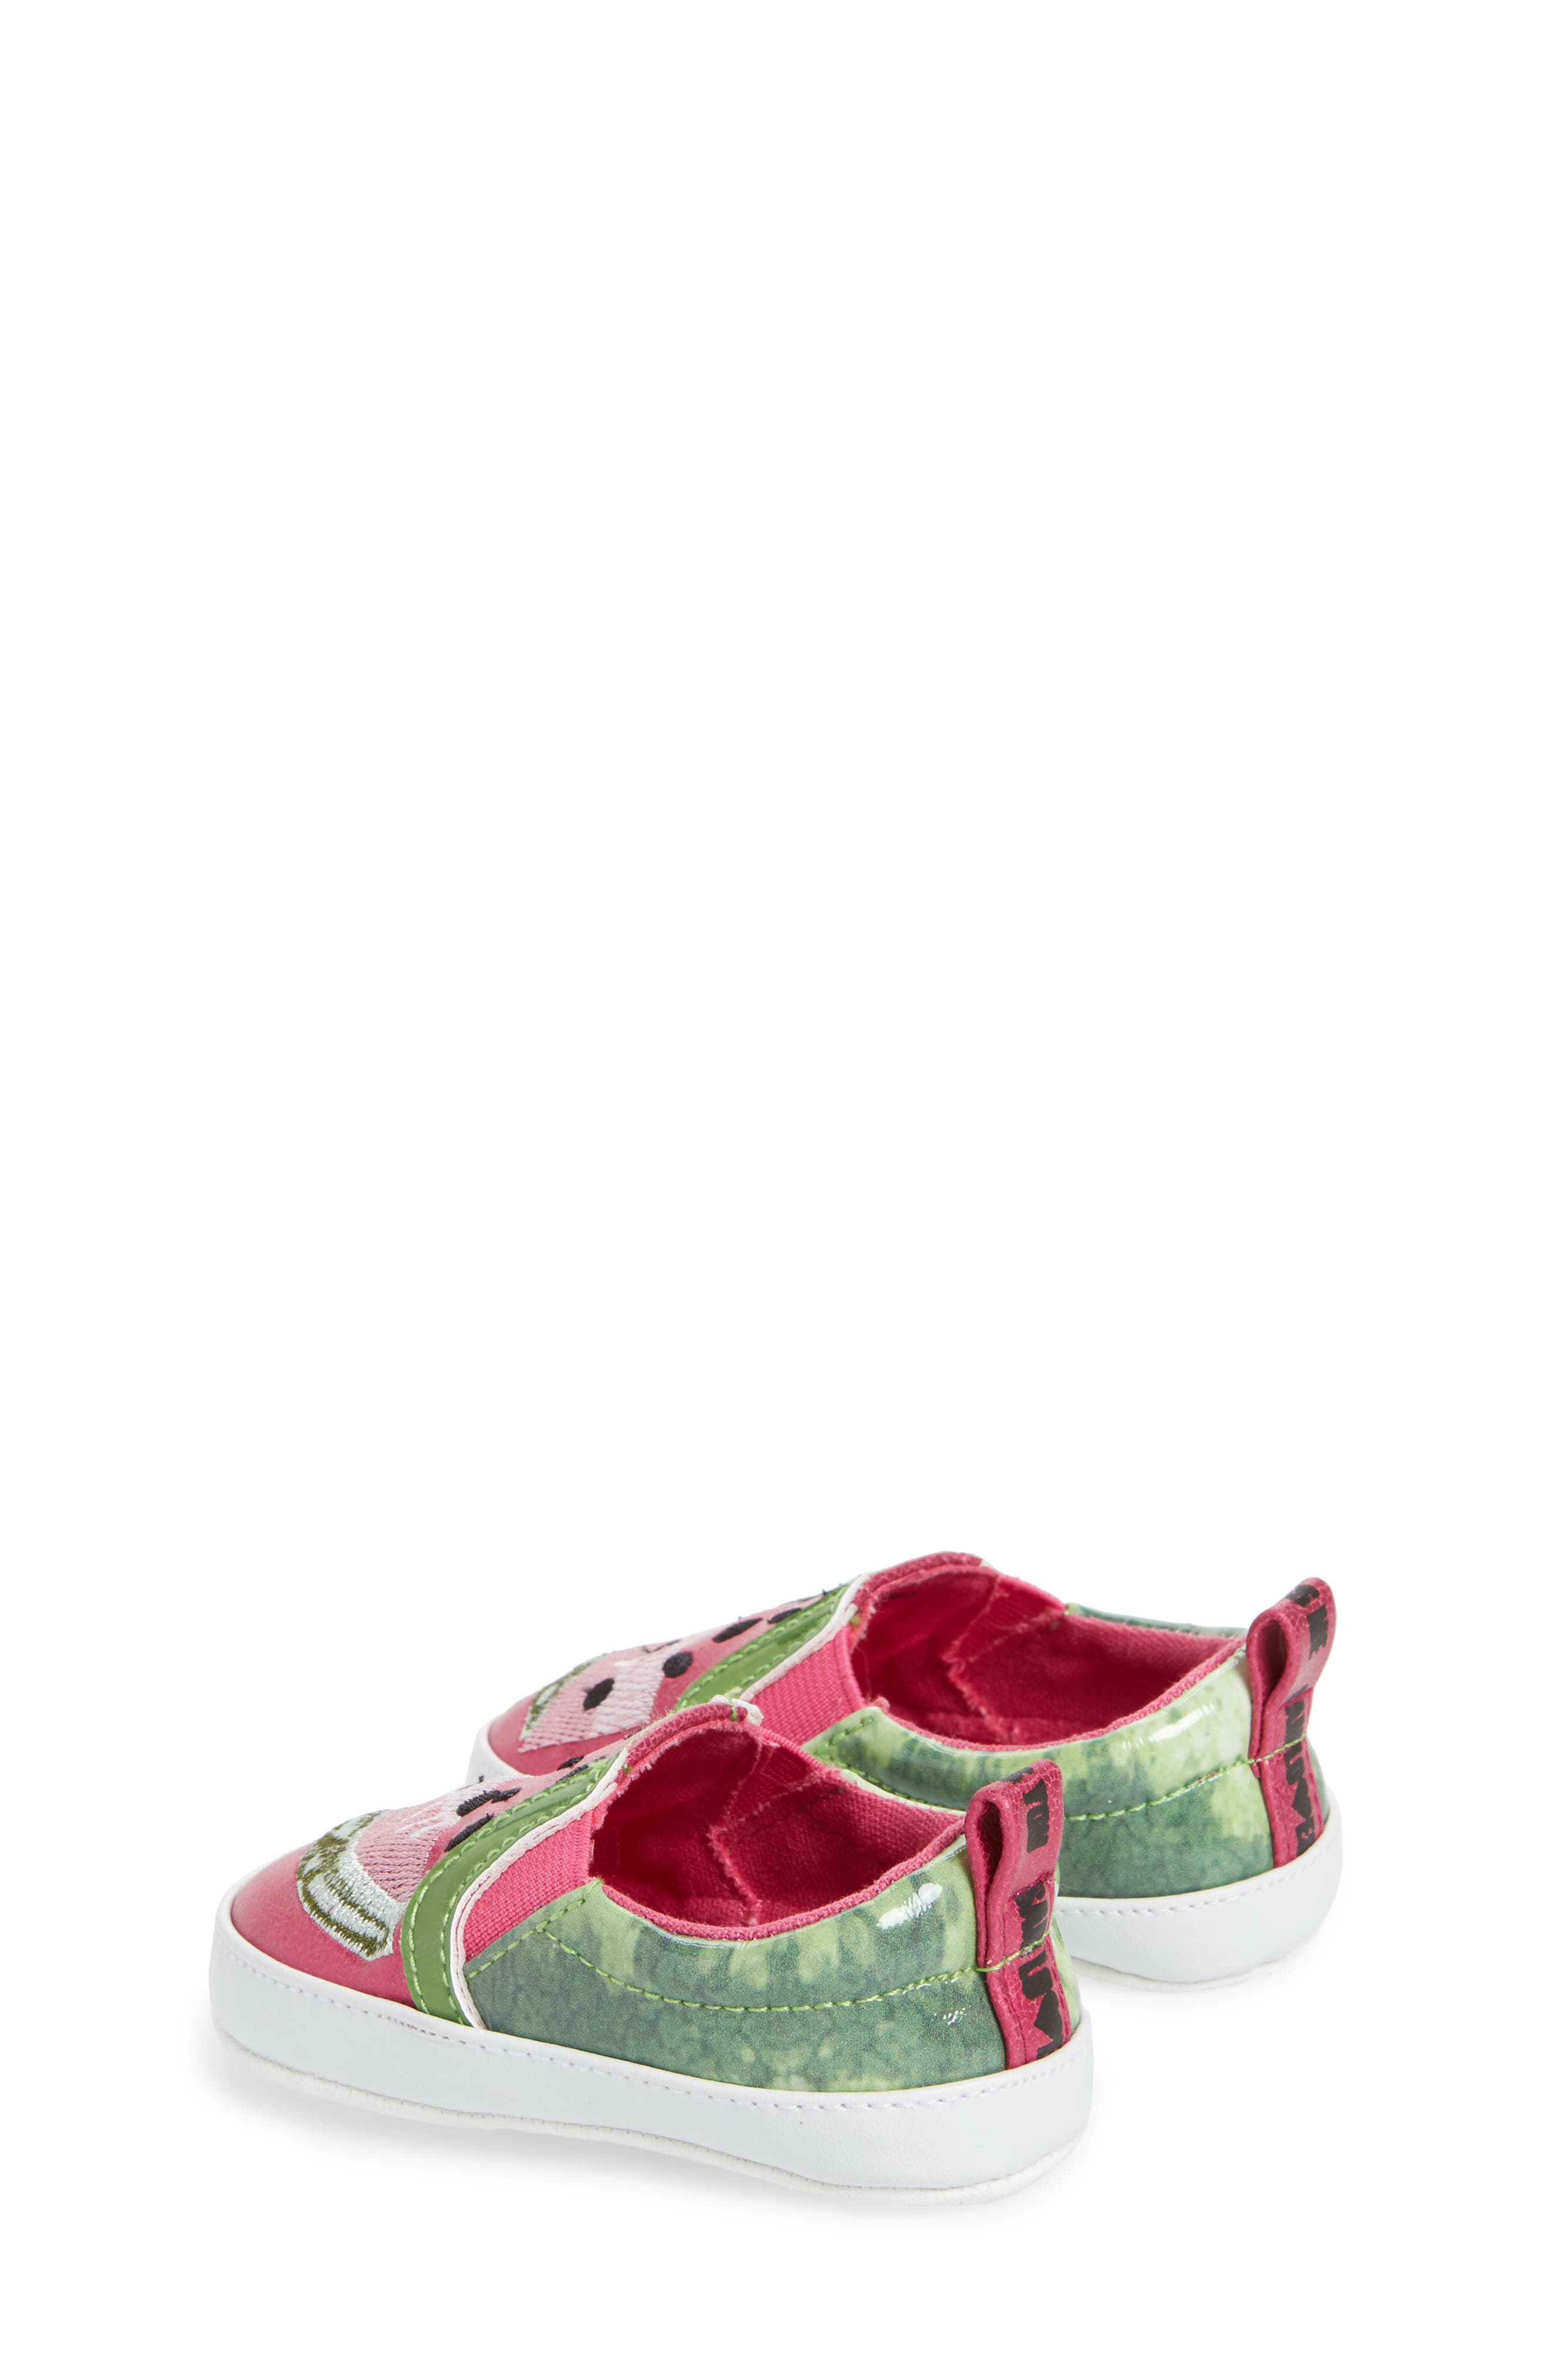 Baby Blane Watermelon Sneaker,                             Alternate thumbnail 2, color,                             Fuchsia Faux Leather